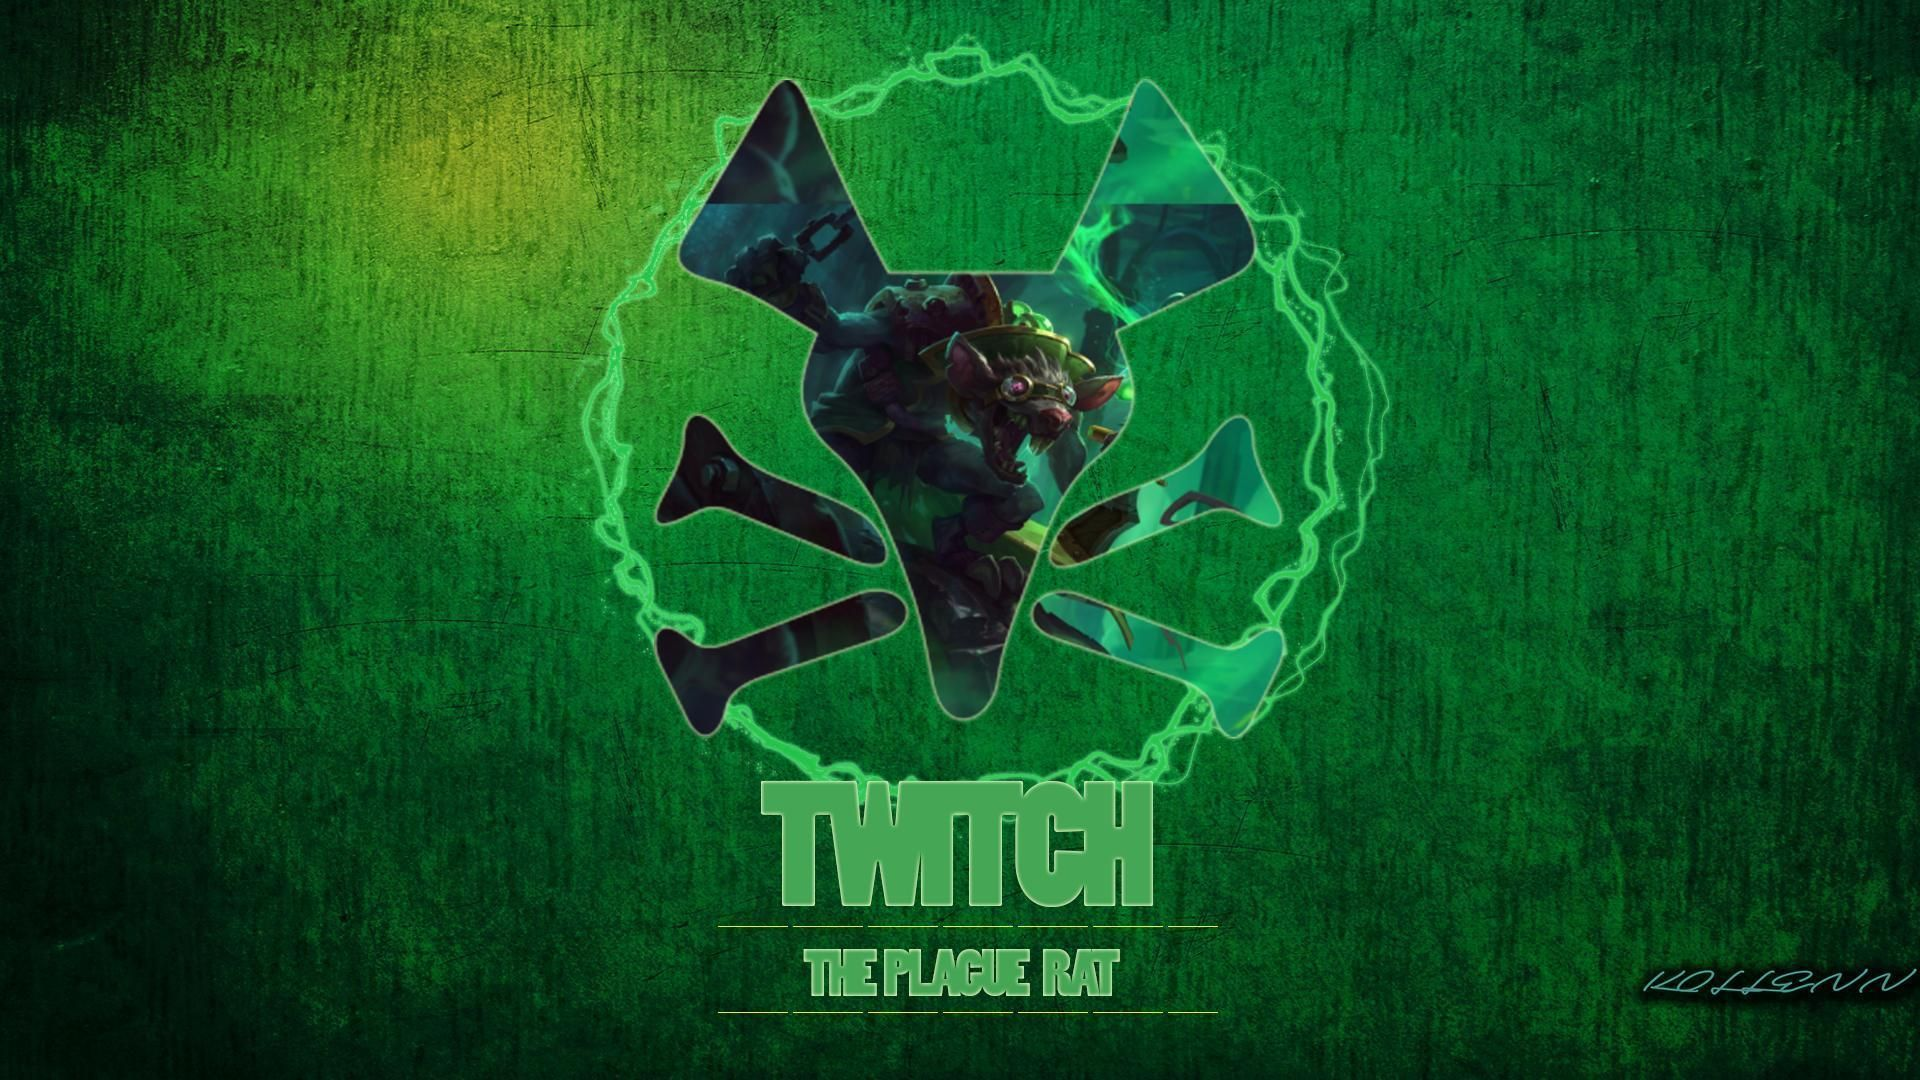 Twitch Plague Rat